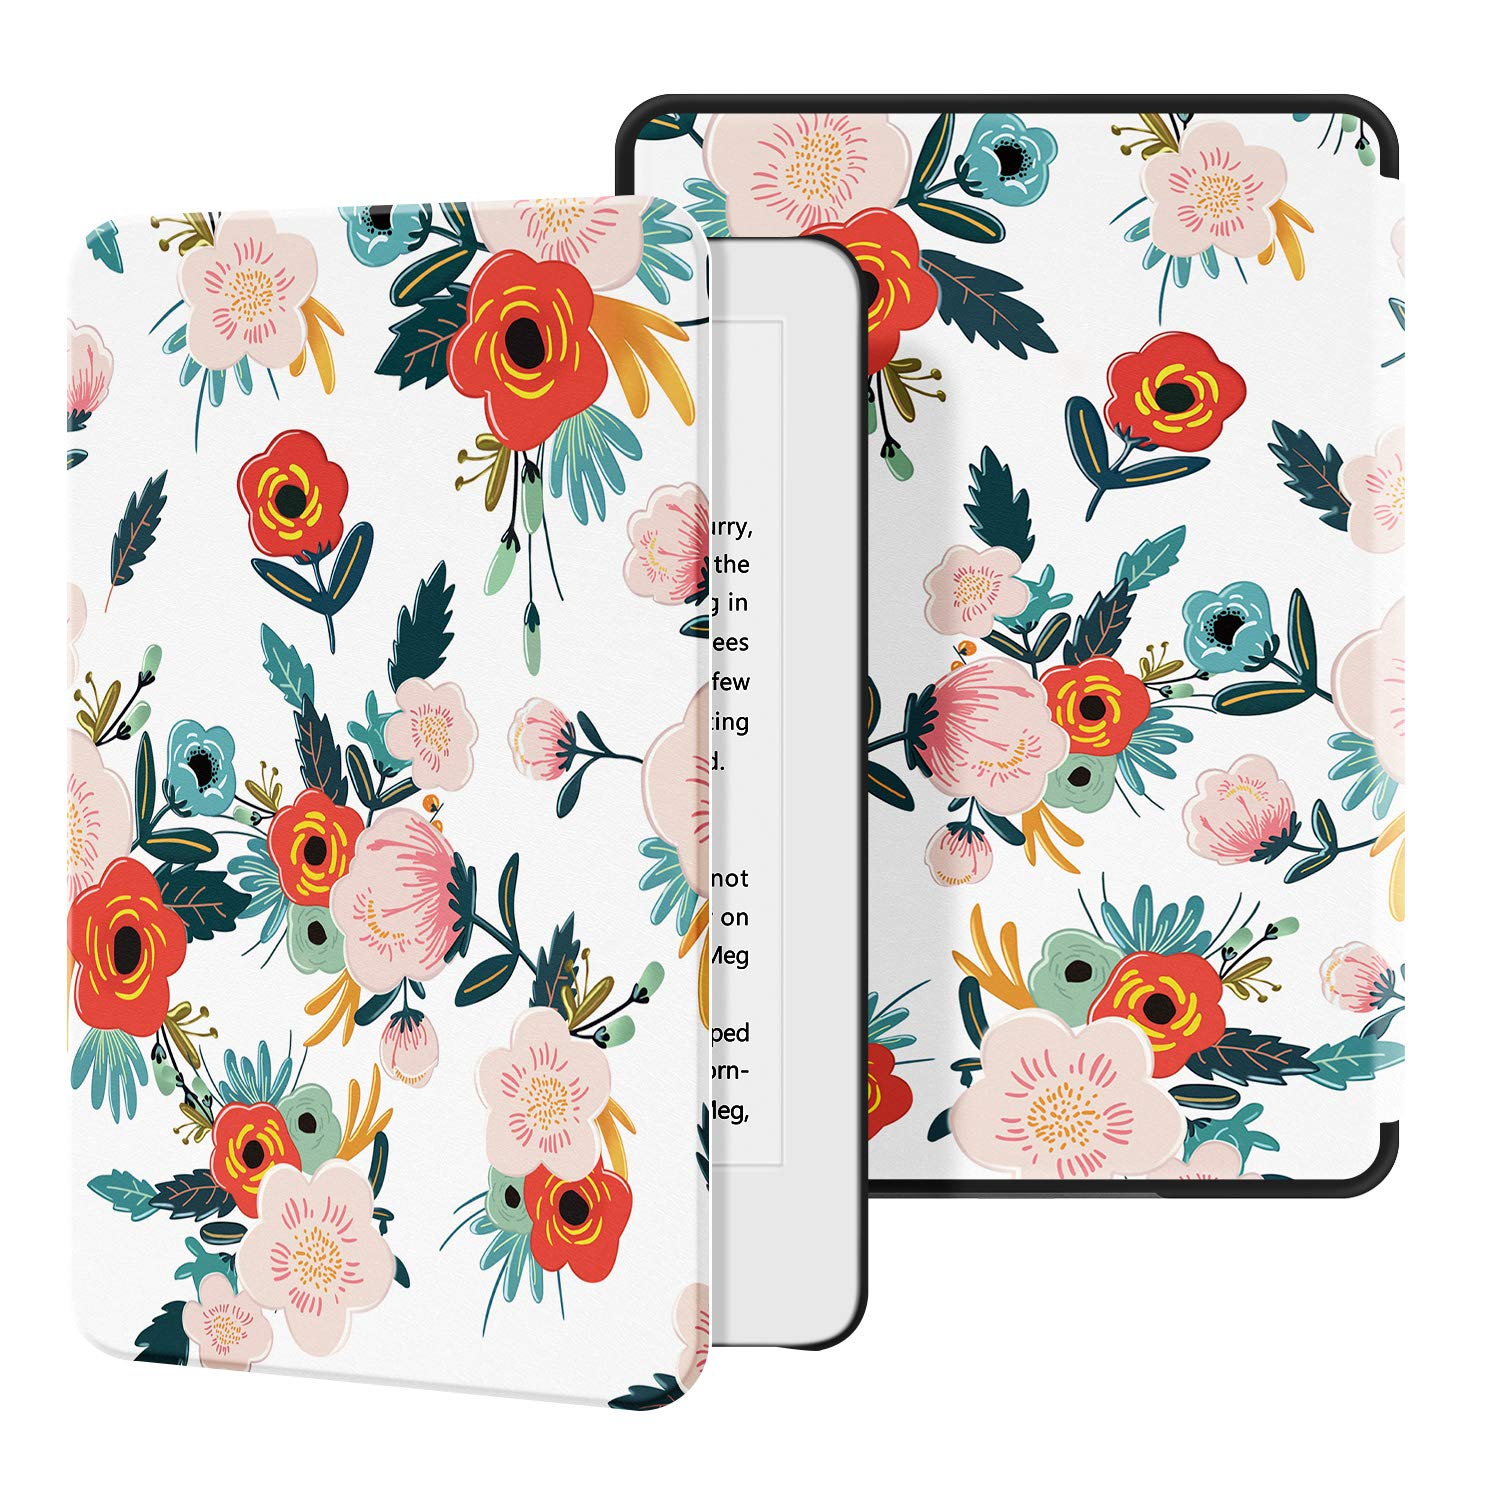 Ayotu Slim Case for All-New Kindle(10th Gen, 2019 Release) - PU Leather Cover with Auto Wake/Sleep-Fits Amazon All-New Kindle 2019(Will not fit Kindle Paperwhite or Kindle Oasis), Flowers